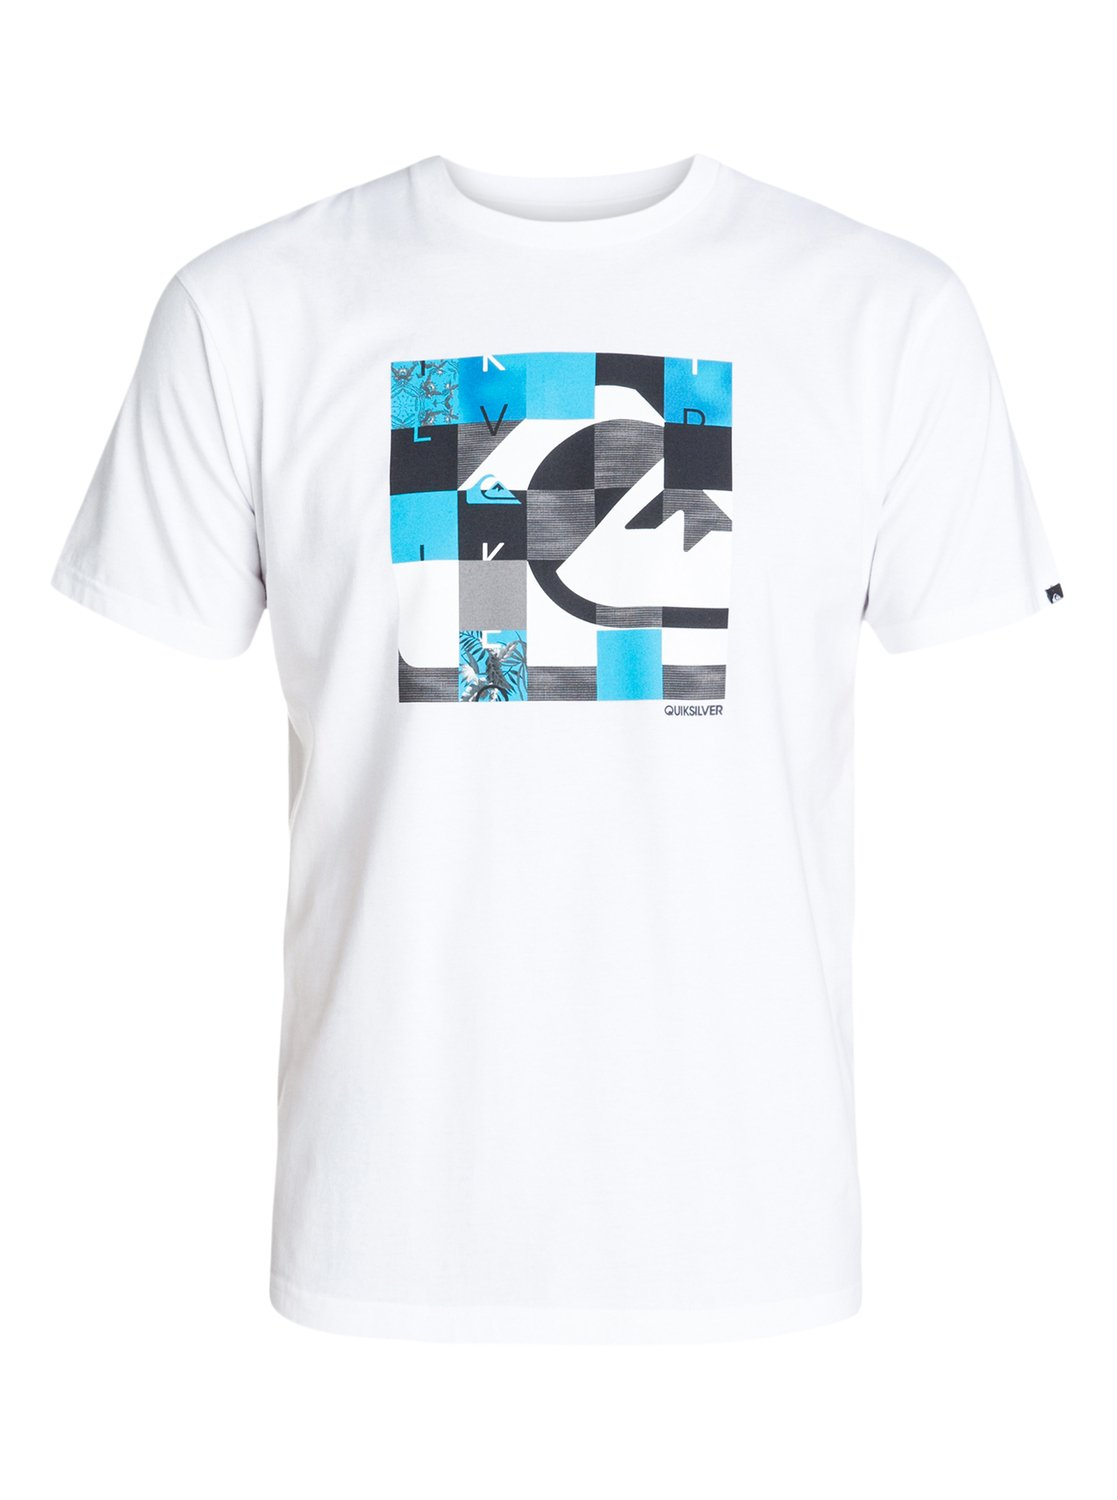 Classic Tee Chipped - Quiksilver������� �������� Quiksilver � �������� ������� � ������� �� ��������� ����� 2015. ��������������: ����������� �������� (160 �/��. �), ����������� ����, ����� Quiksilver �� ������.<br>